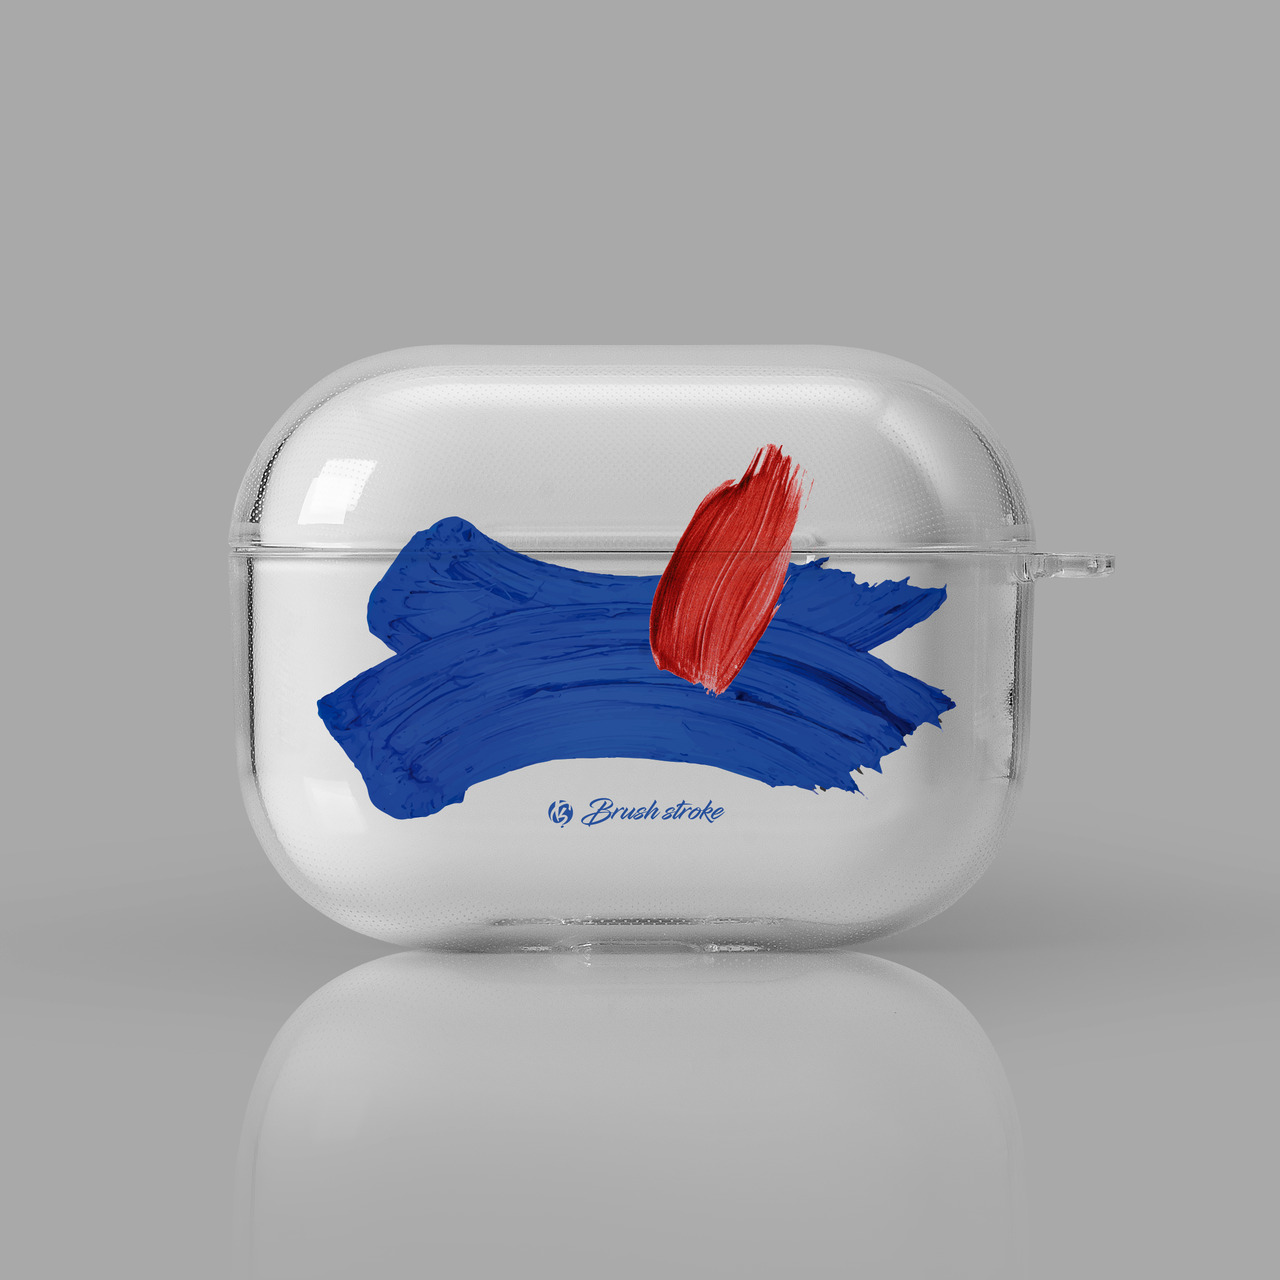 [Airpods cases] Brushstrokes No.14